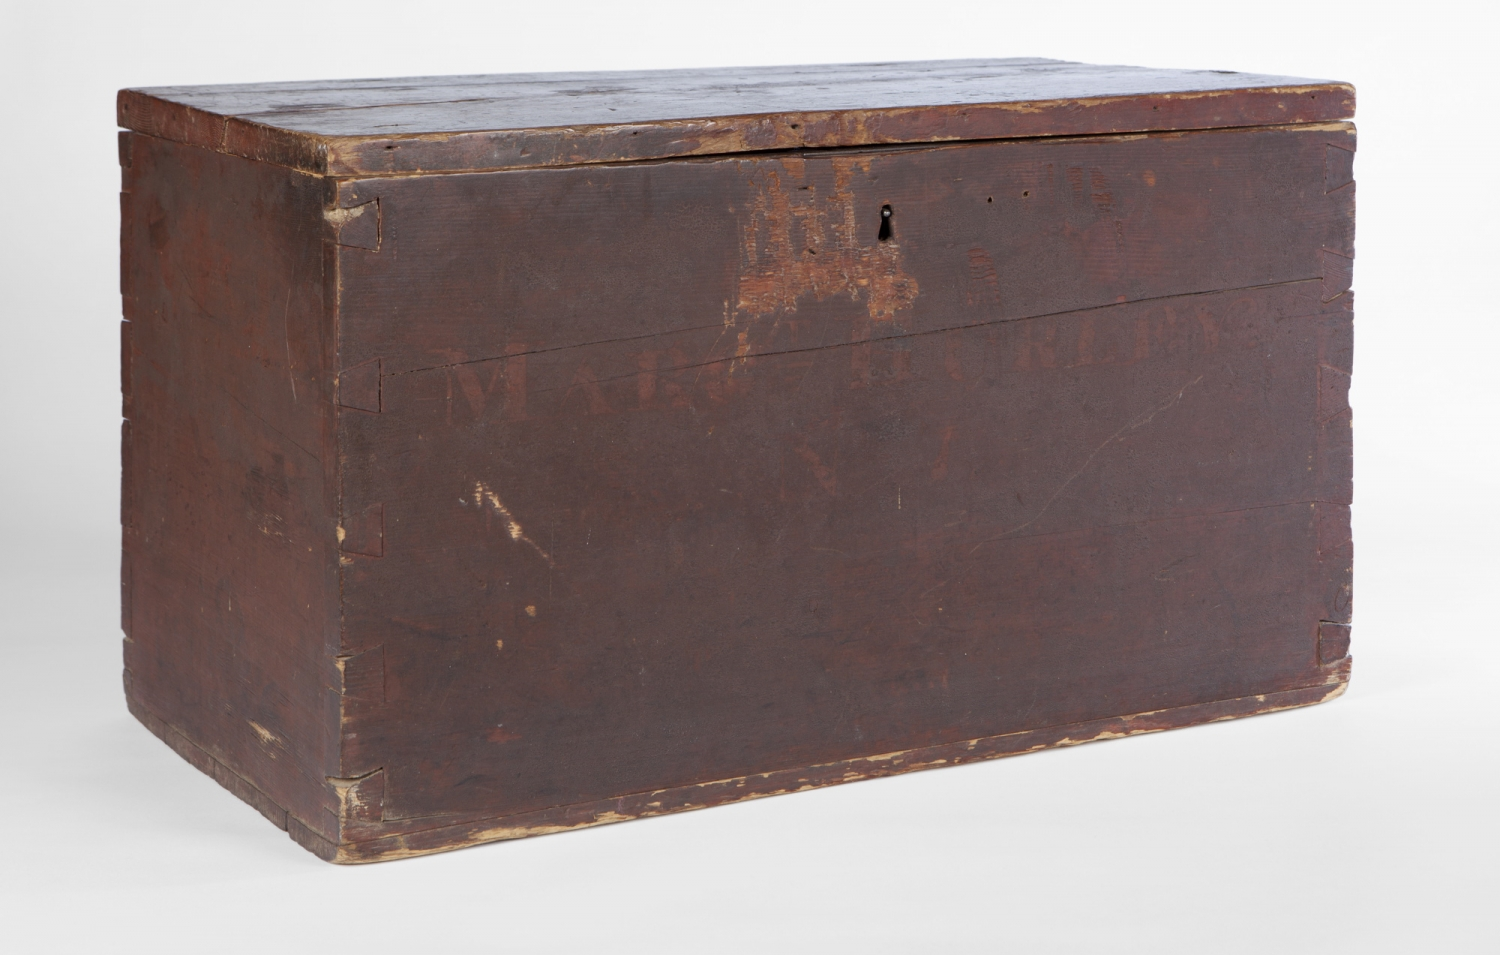 Plain scuffed dark brown wooden box with name 'Hurley' faintly visible on front.